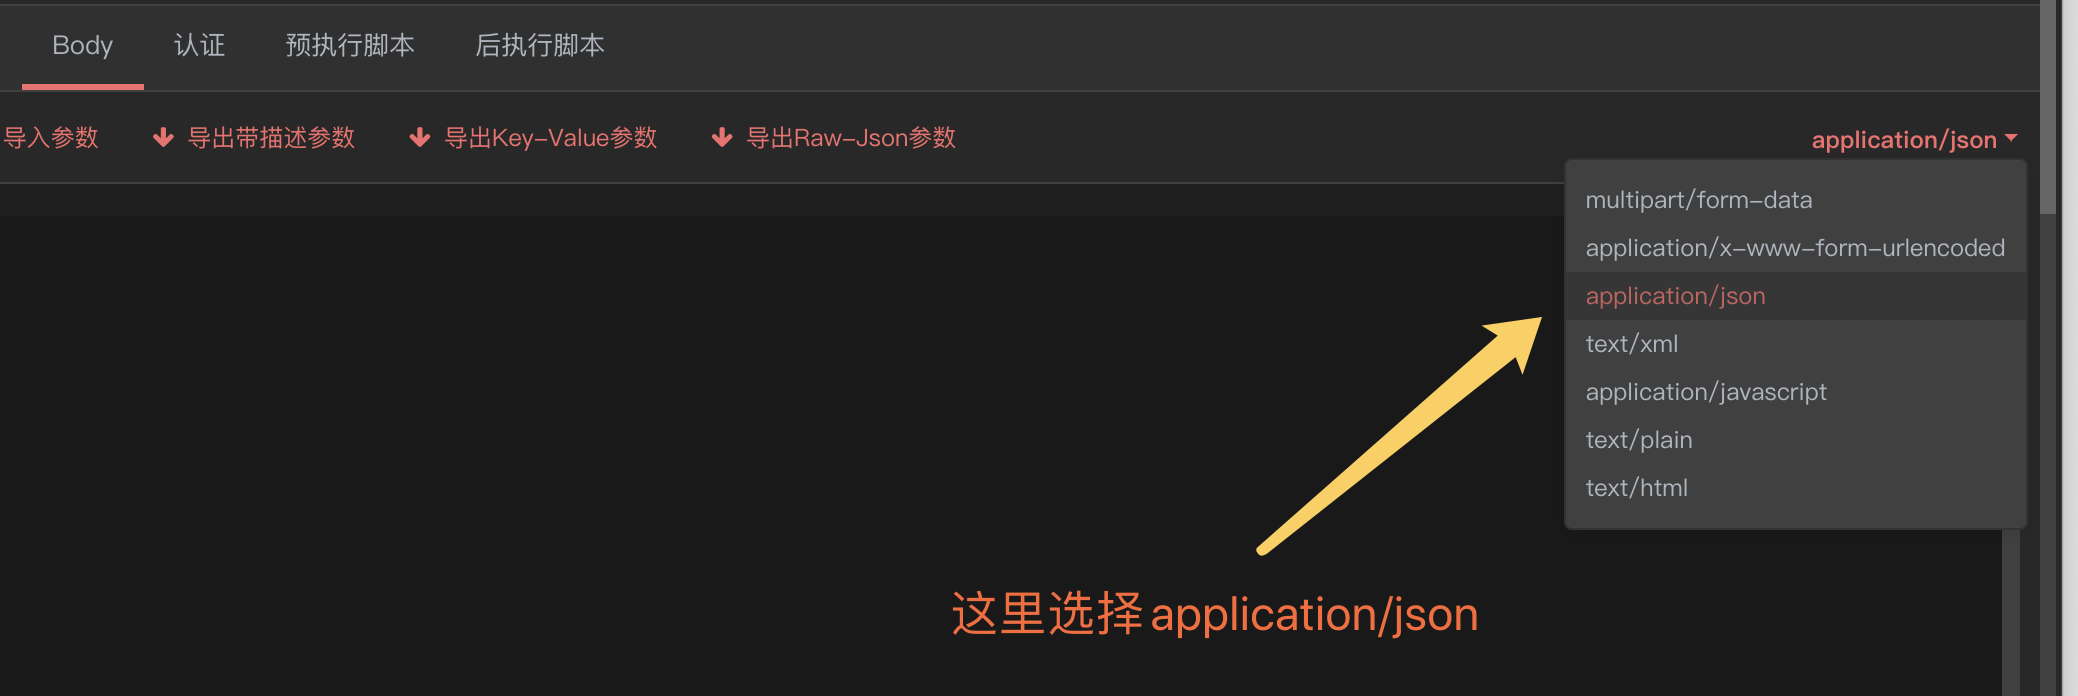 contentType 为 application/x-www-form-urlencoded 时参数怎么传json